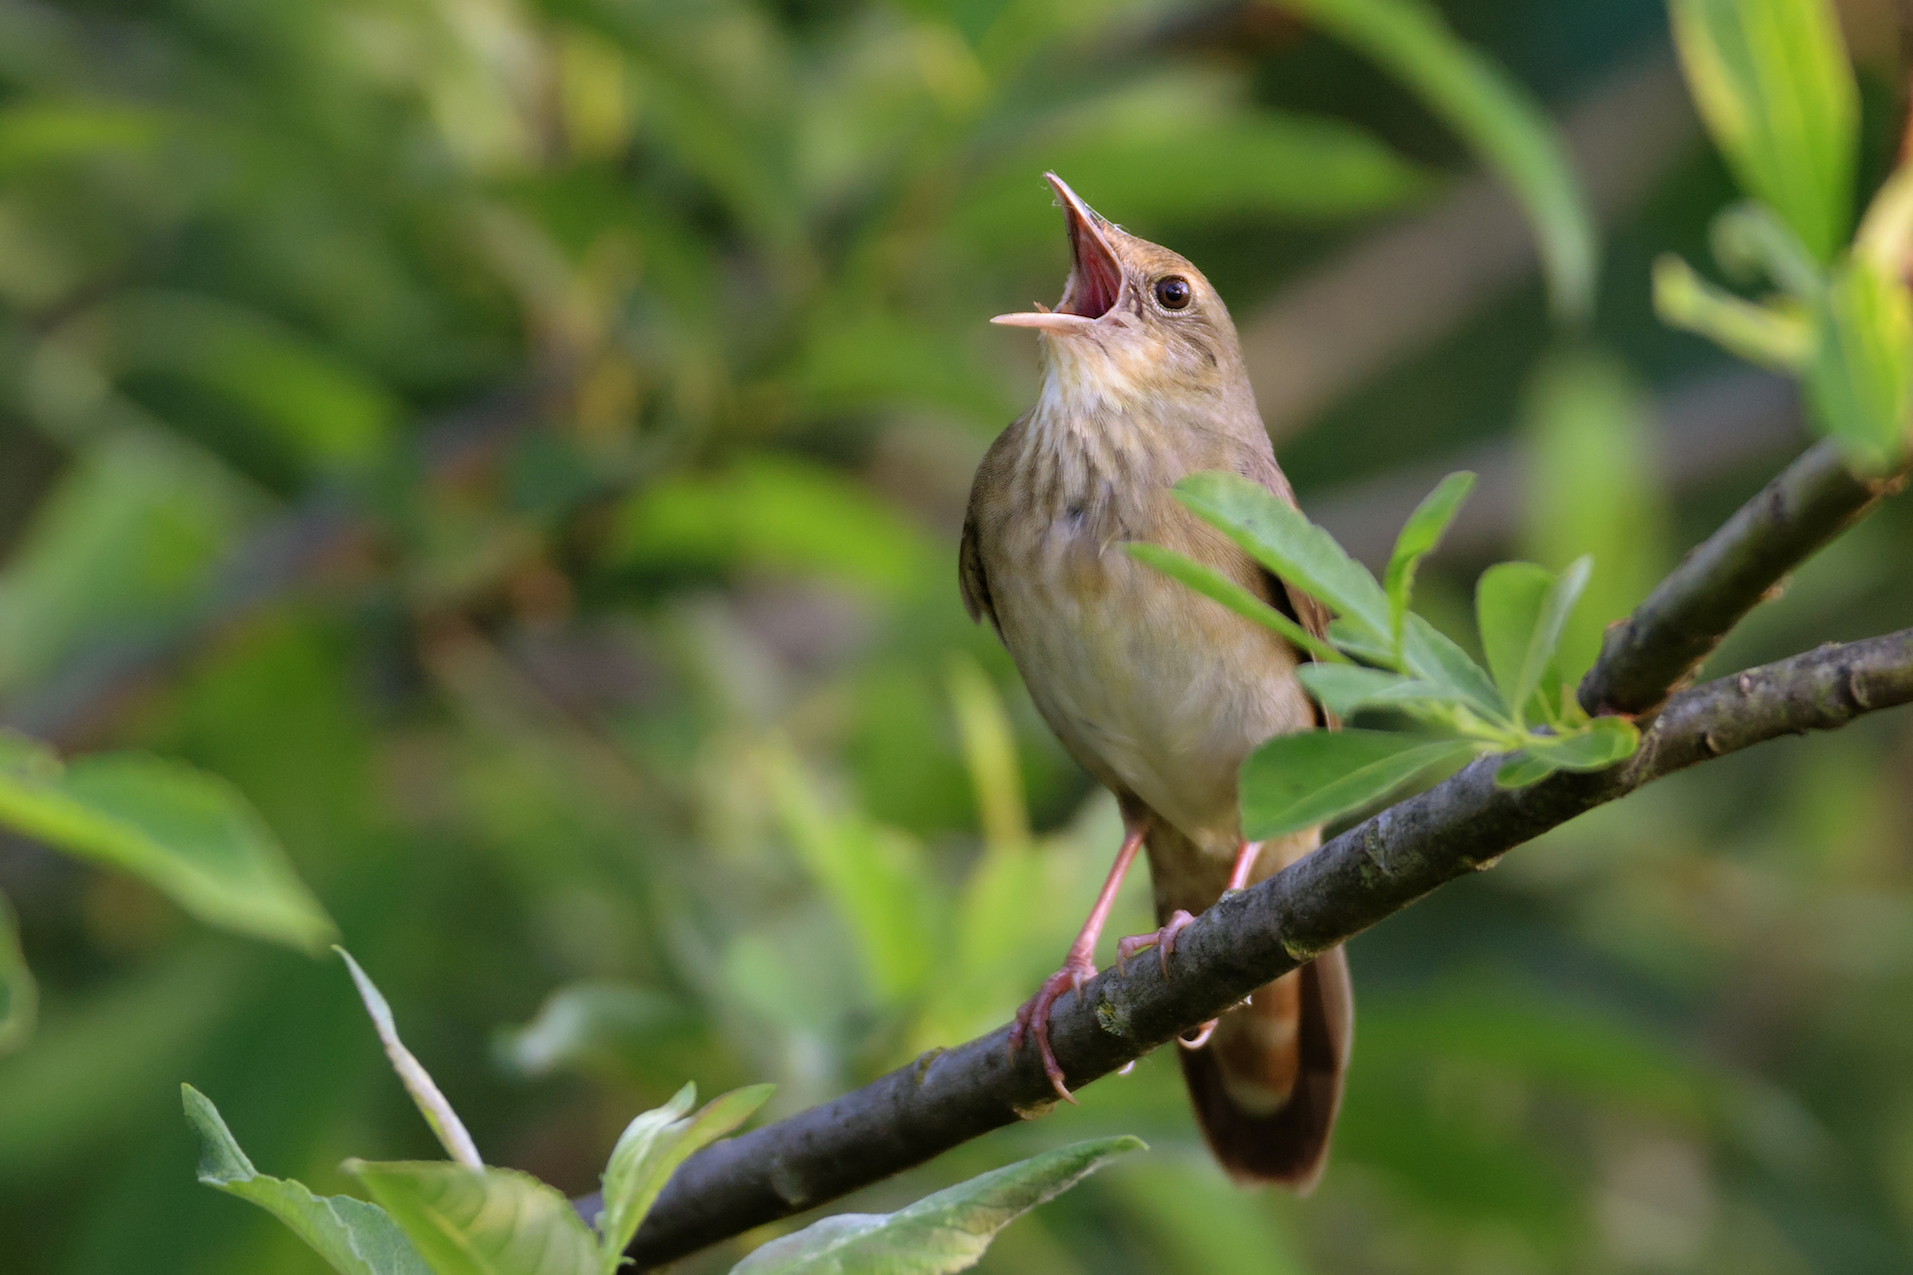 Previous research has suggested that songbirds and humans share the same innate process that guides how they learn and produce sounds.